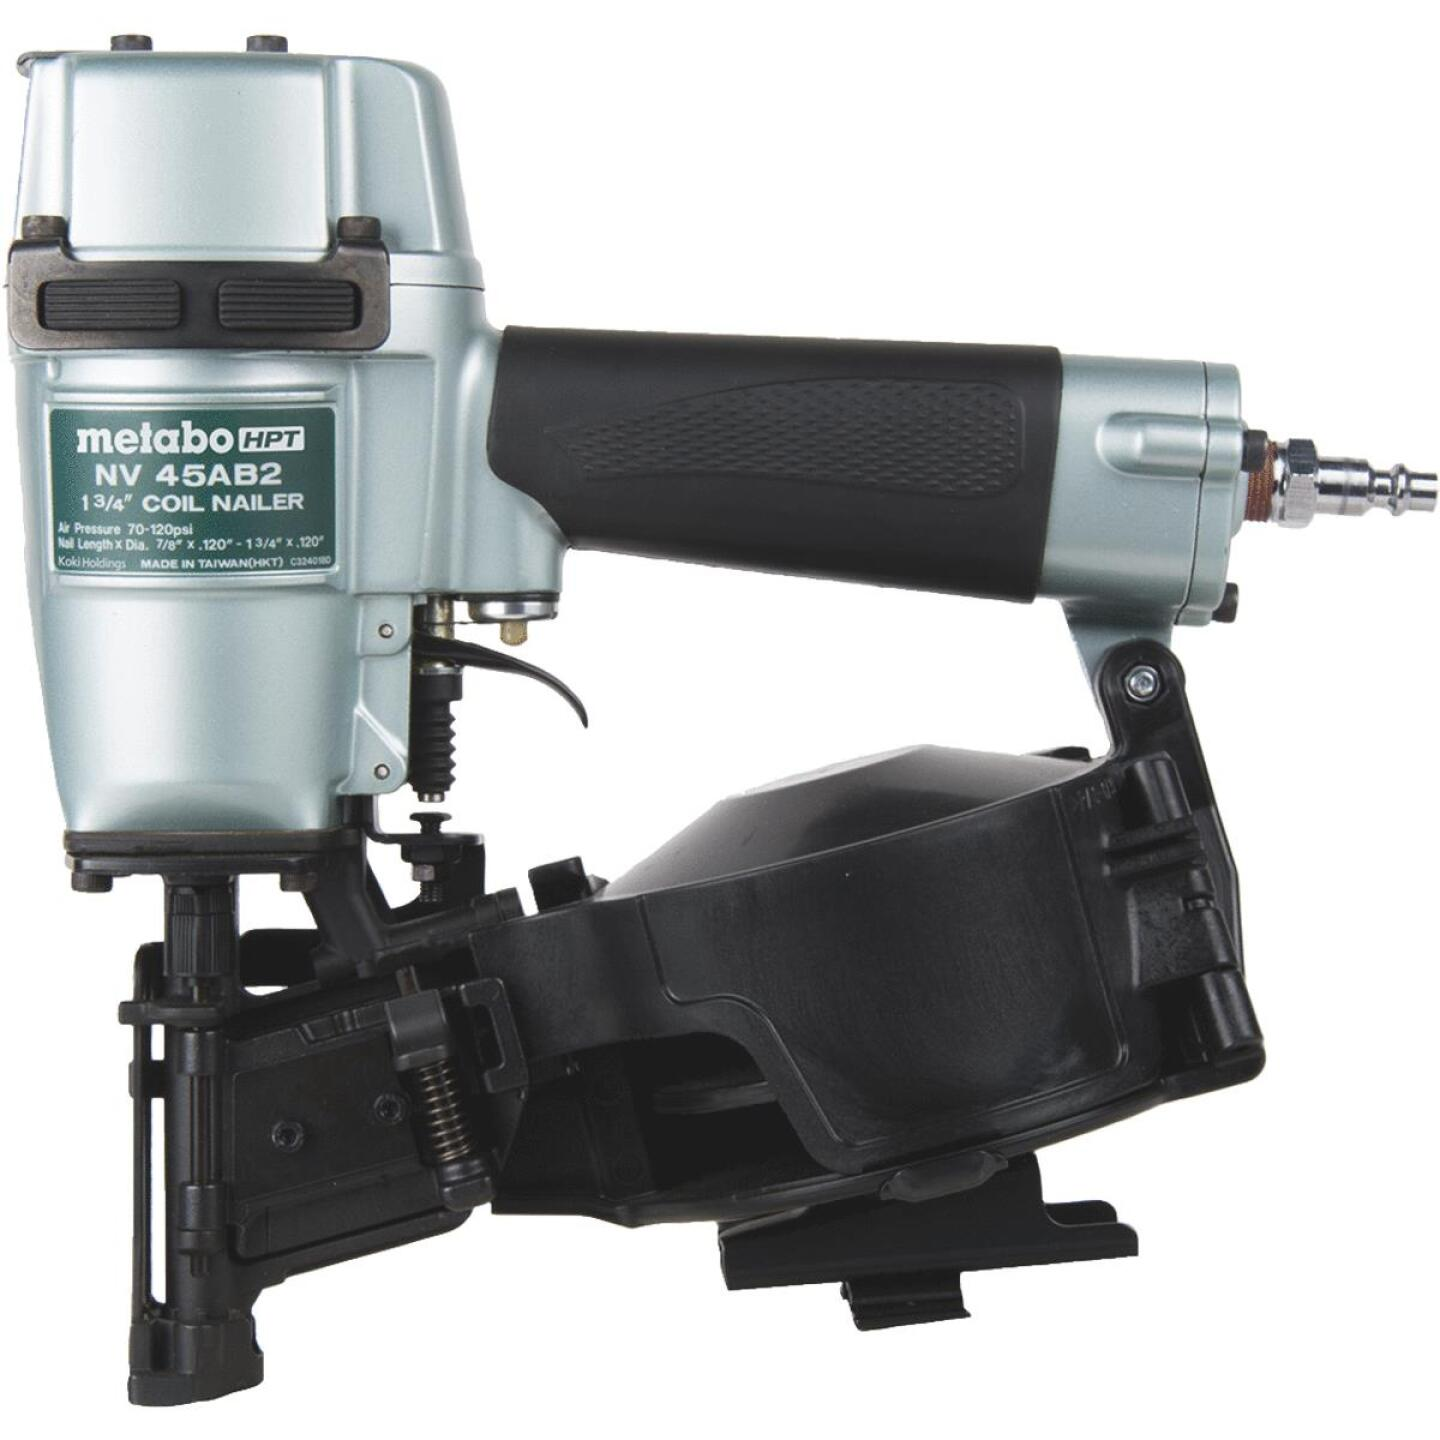 Metabo 16 Degree 1-3/4 In. Coil Roofing Nailer Image 1